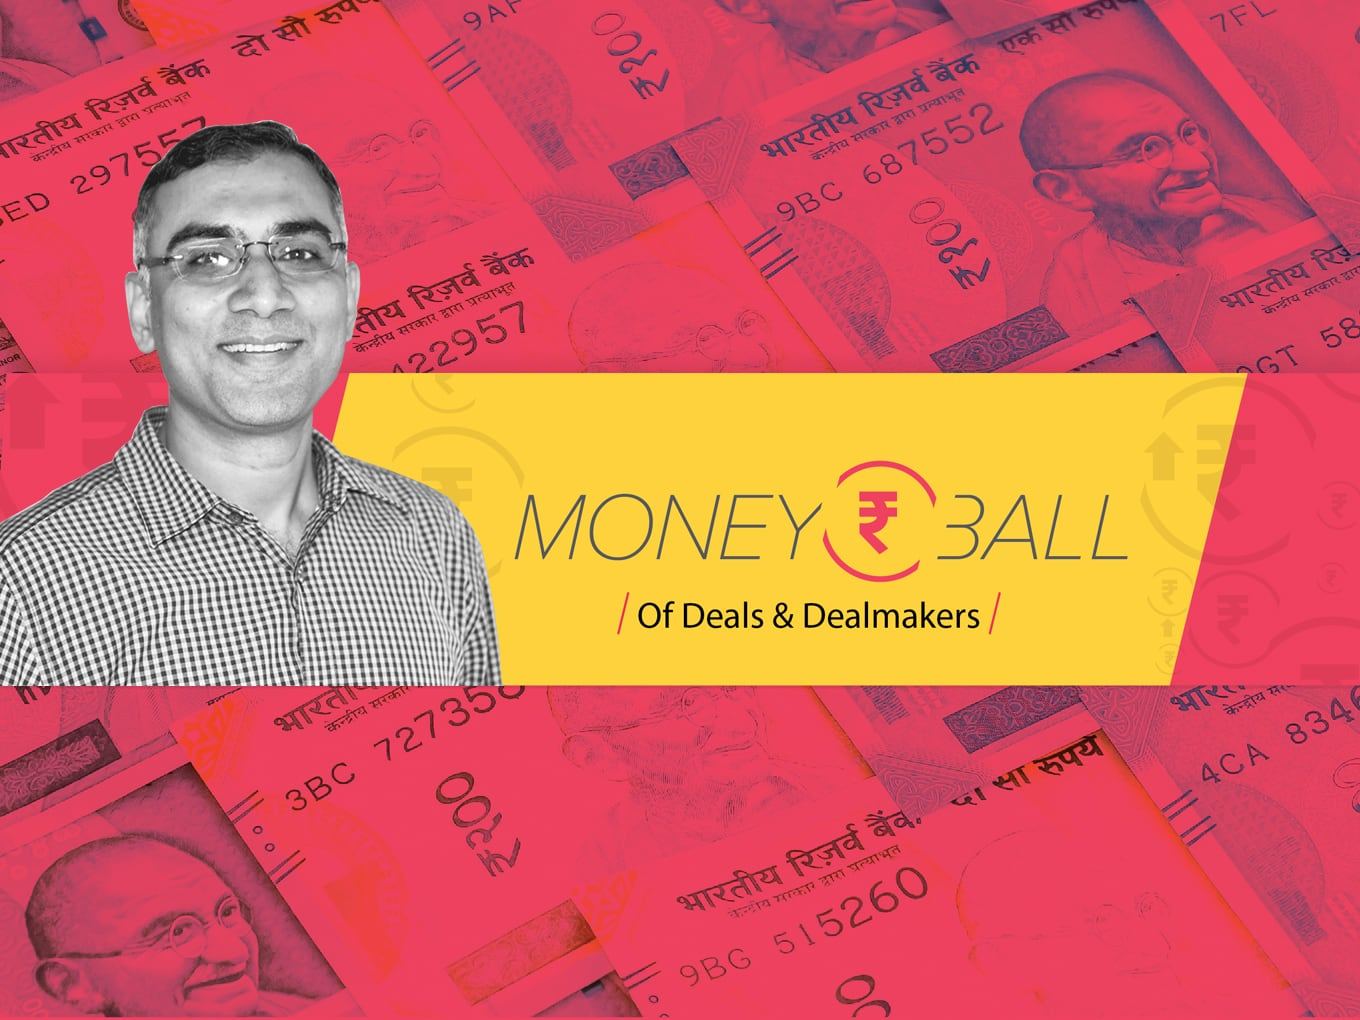 Moneyball: Anand Lunia On The Lack Of Planning For The Lockdown Crushing Small Businesses